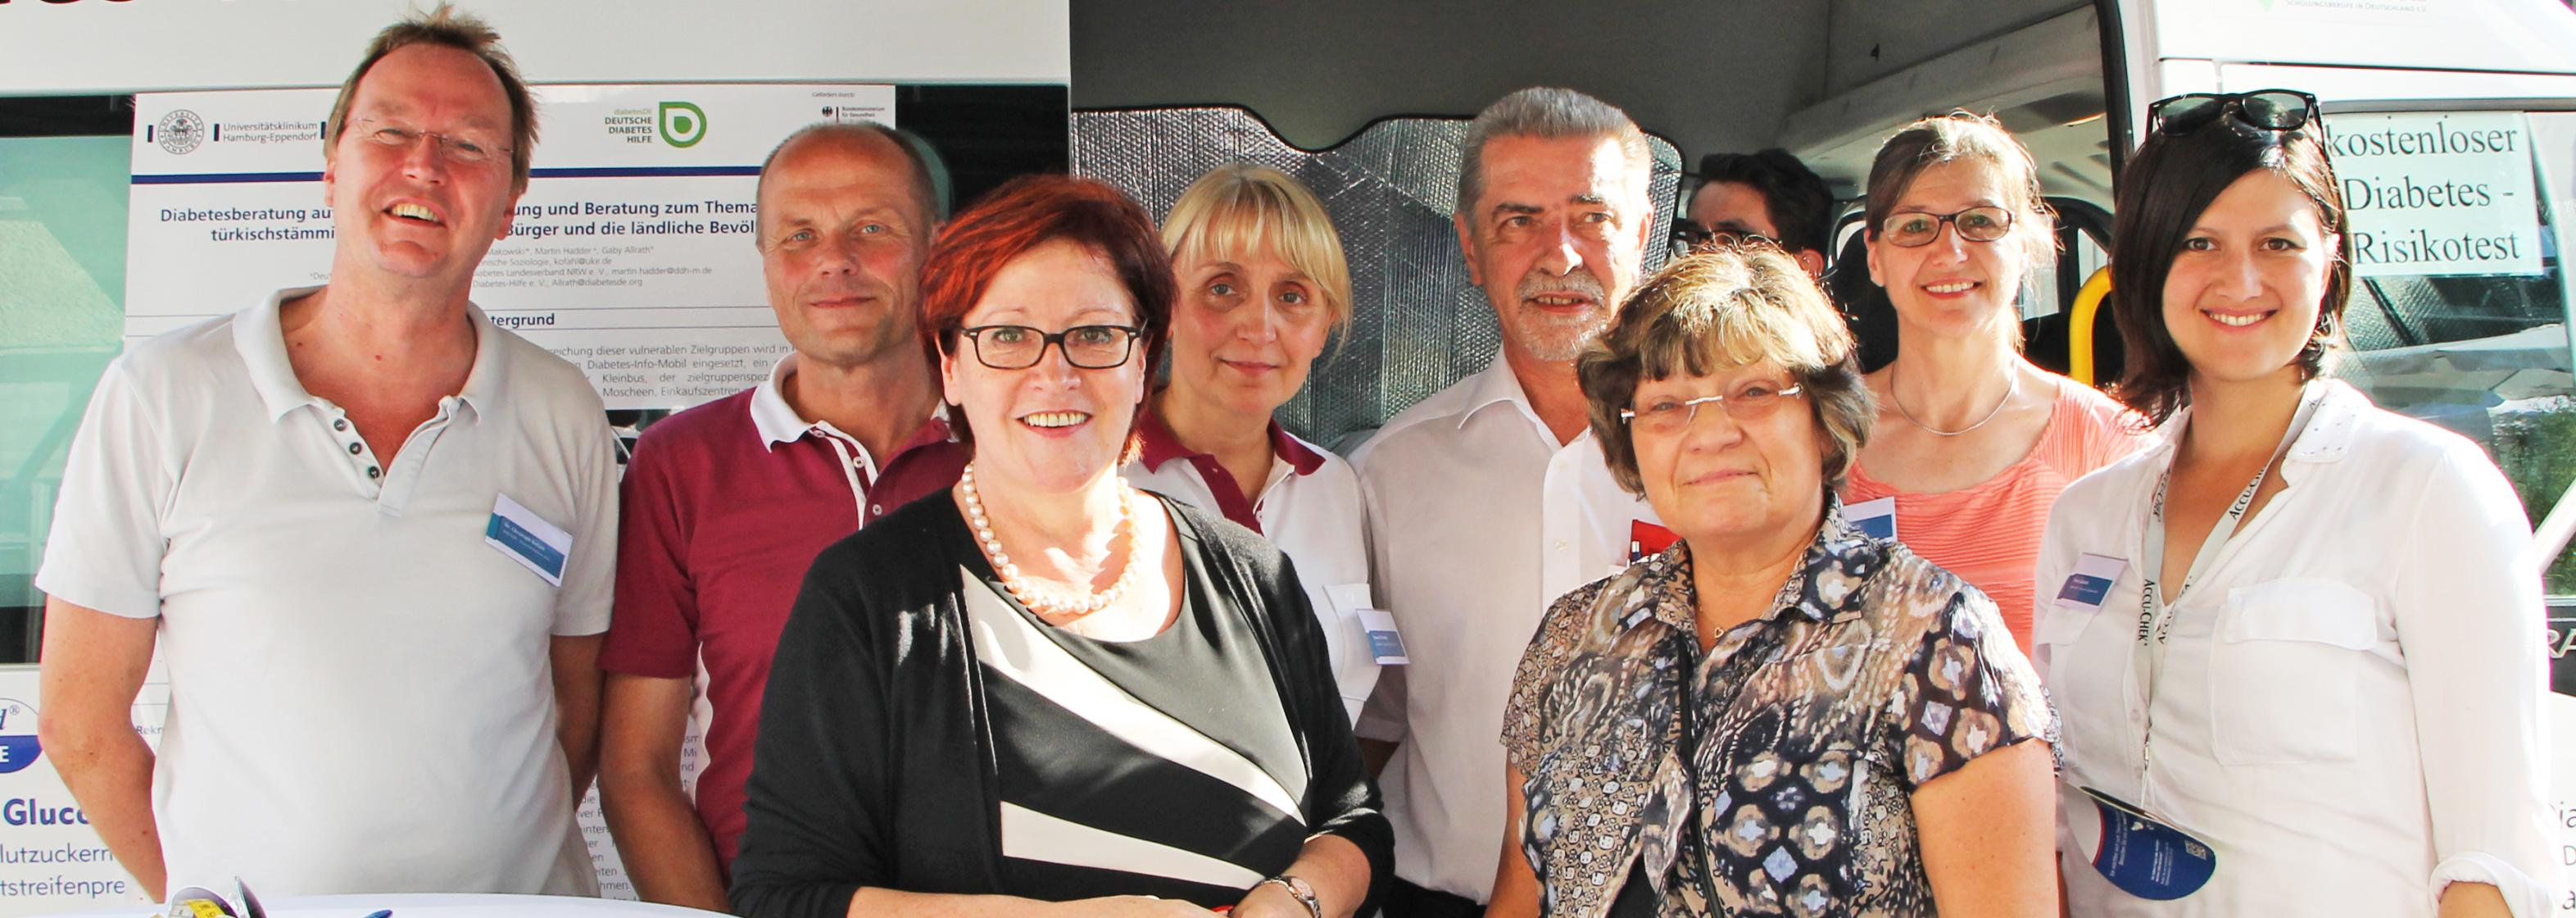 Diabetes-Mobil Berlin Gruppenbild 2015